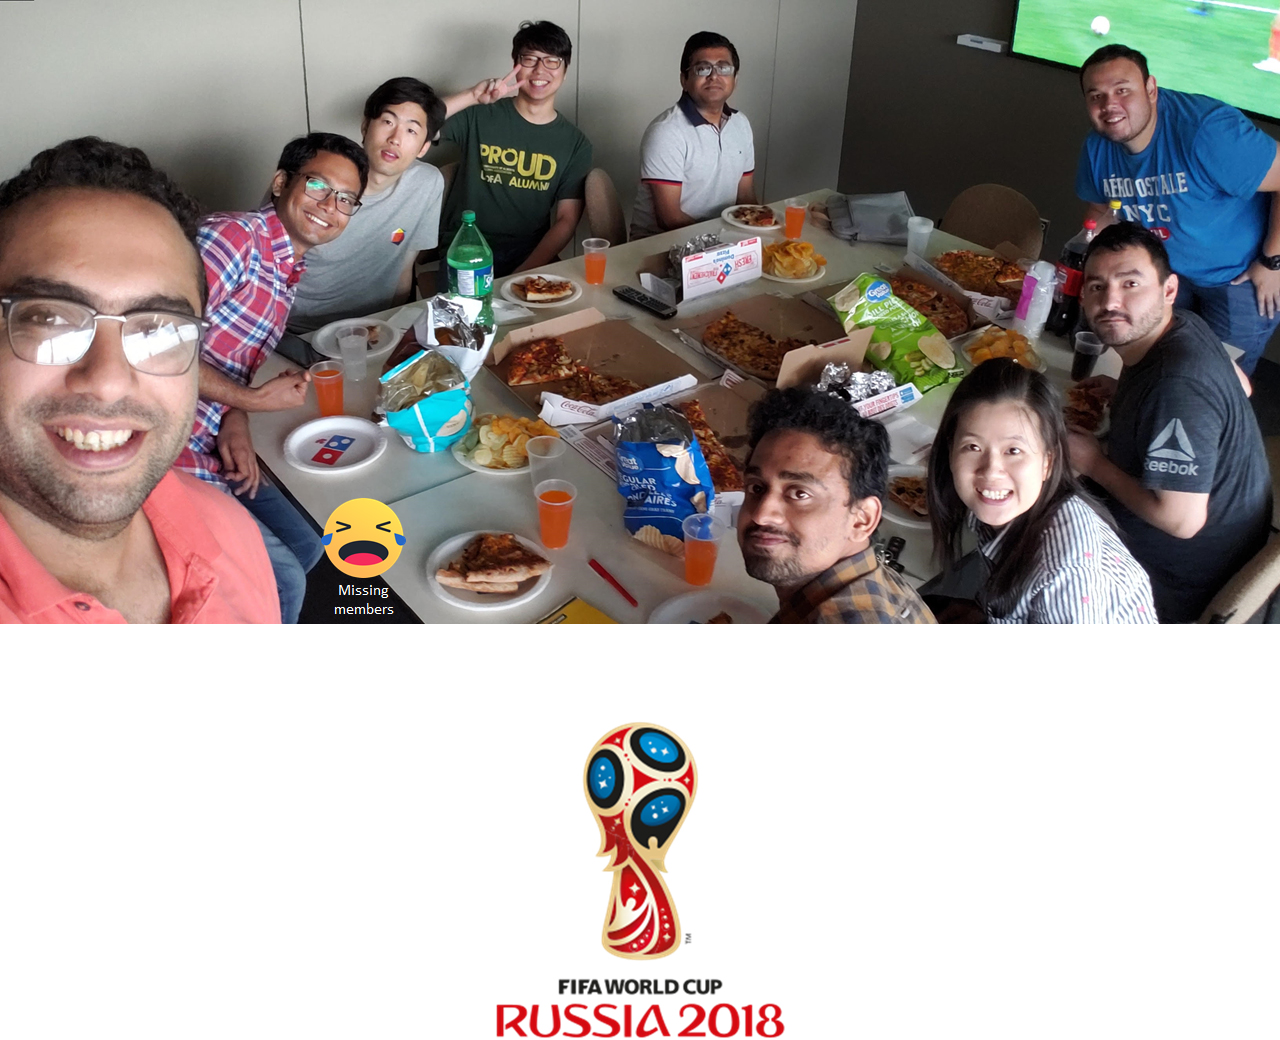 Worldcup Semifinal Lunch_July 10, 2018_3